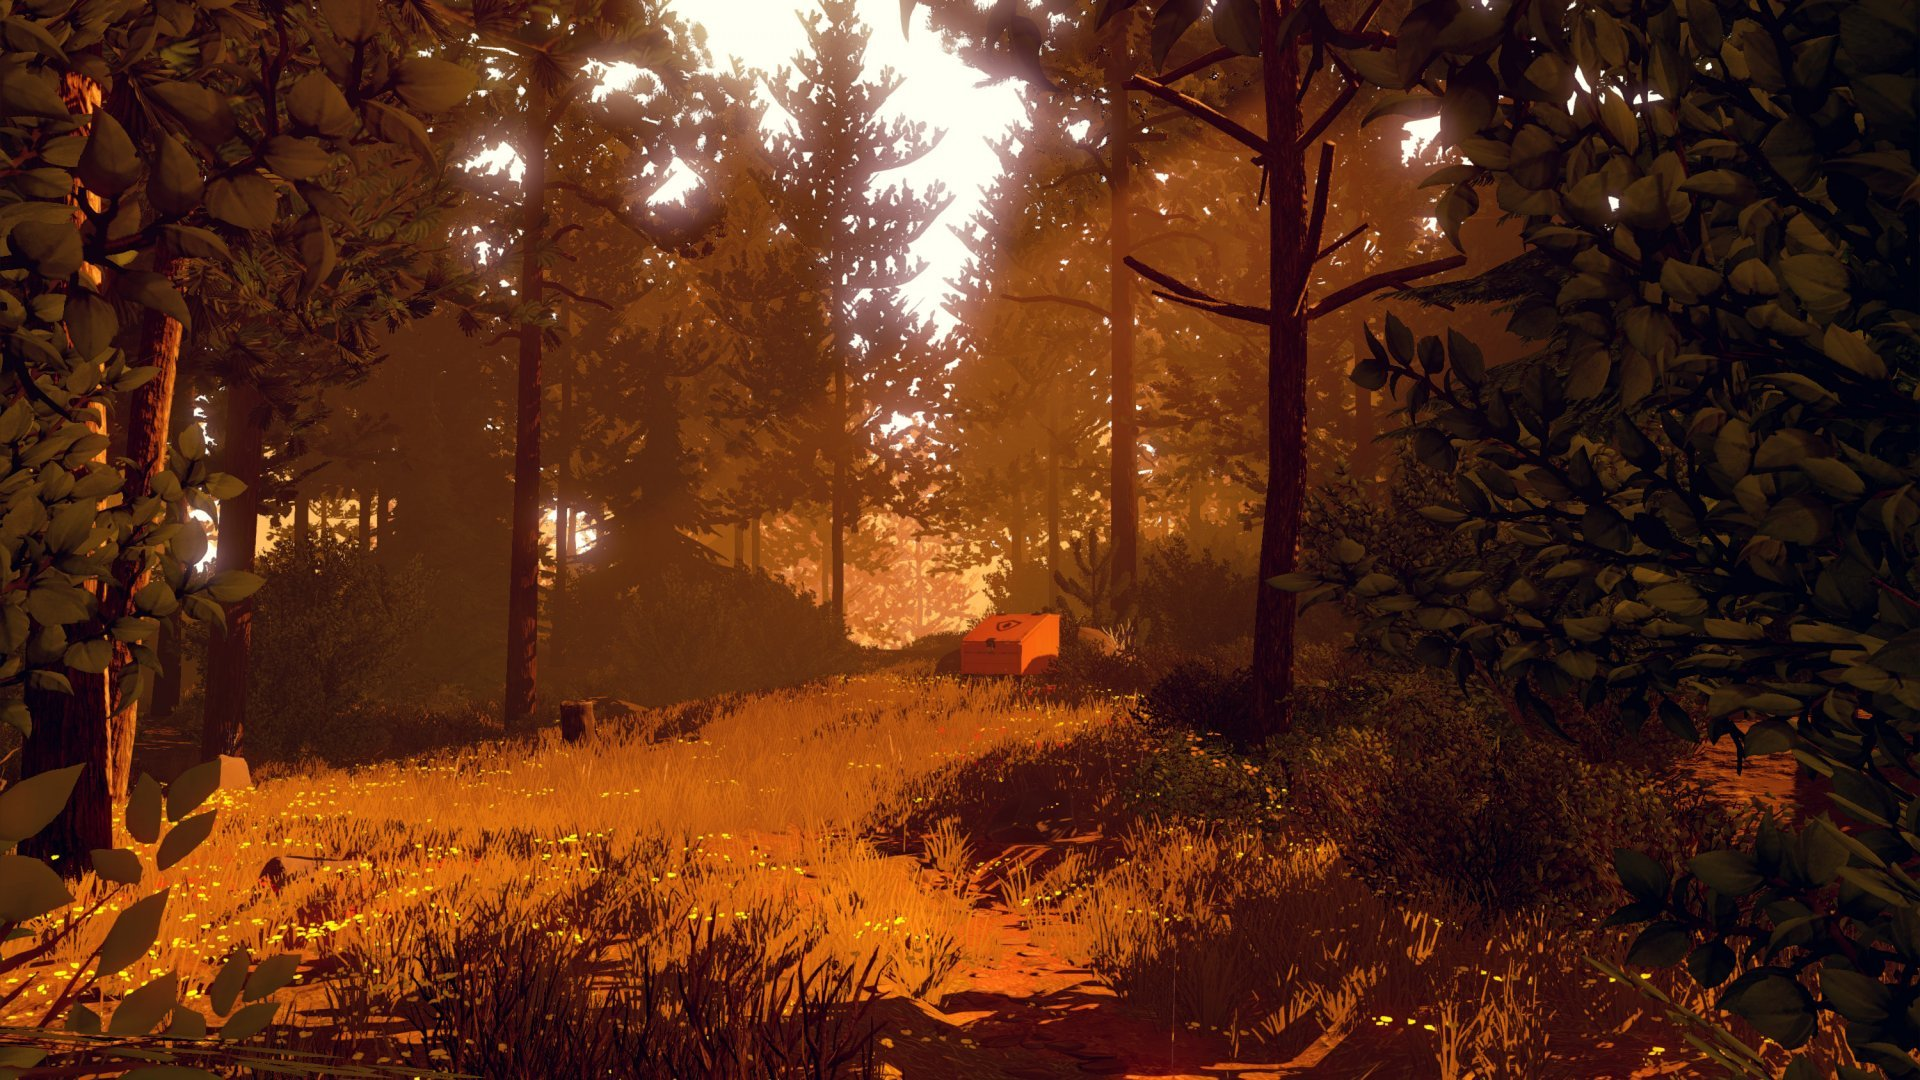 Awesome Firewatch Free Wallpaper Id467991 For Full Hd 1920x1080 Pc